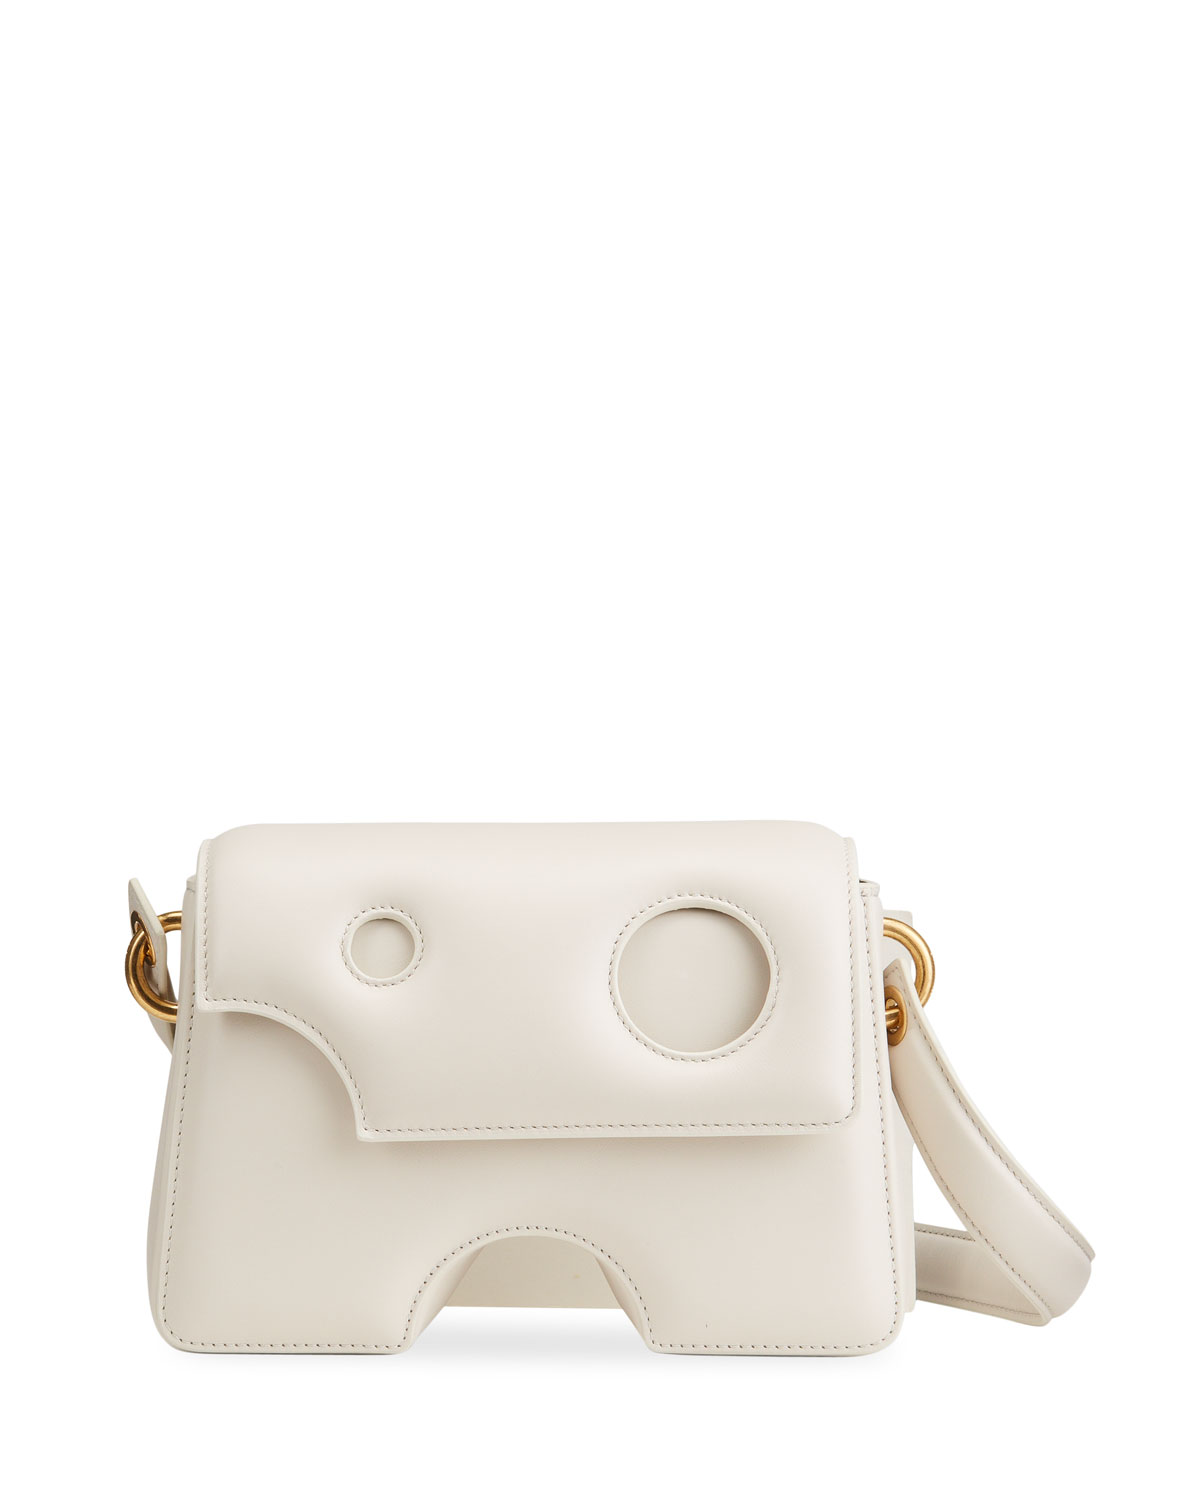 Off-White Leathers BURROW CUTOUT LEATHER SHOULDER BAG, OFF WHITE